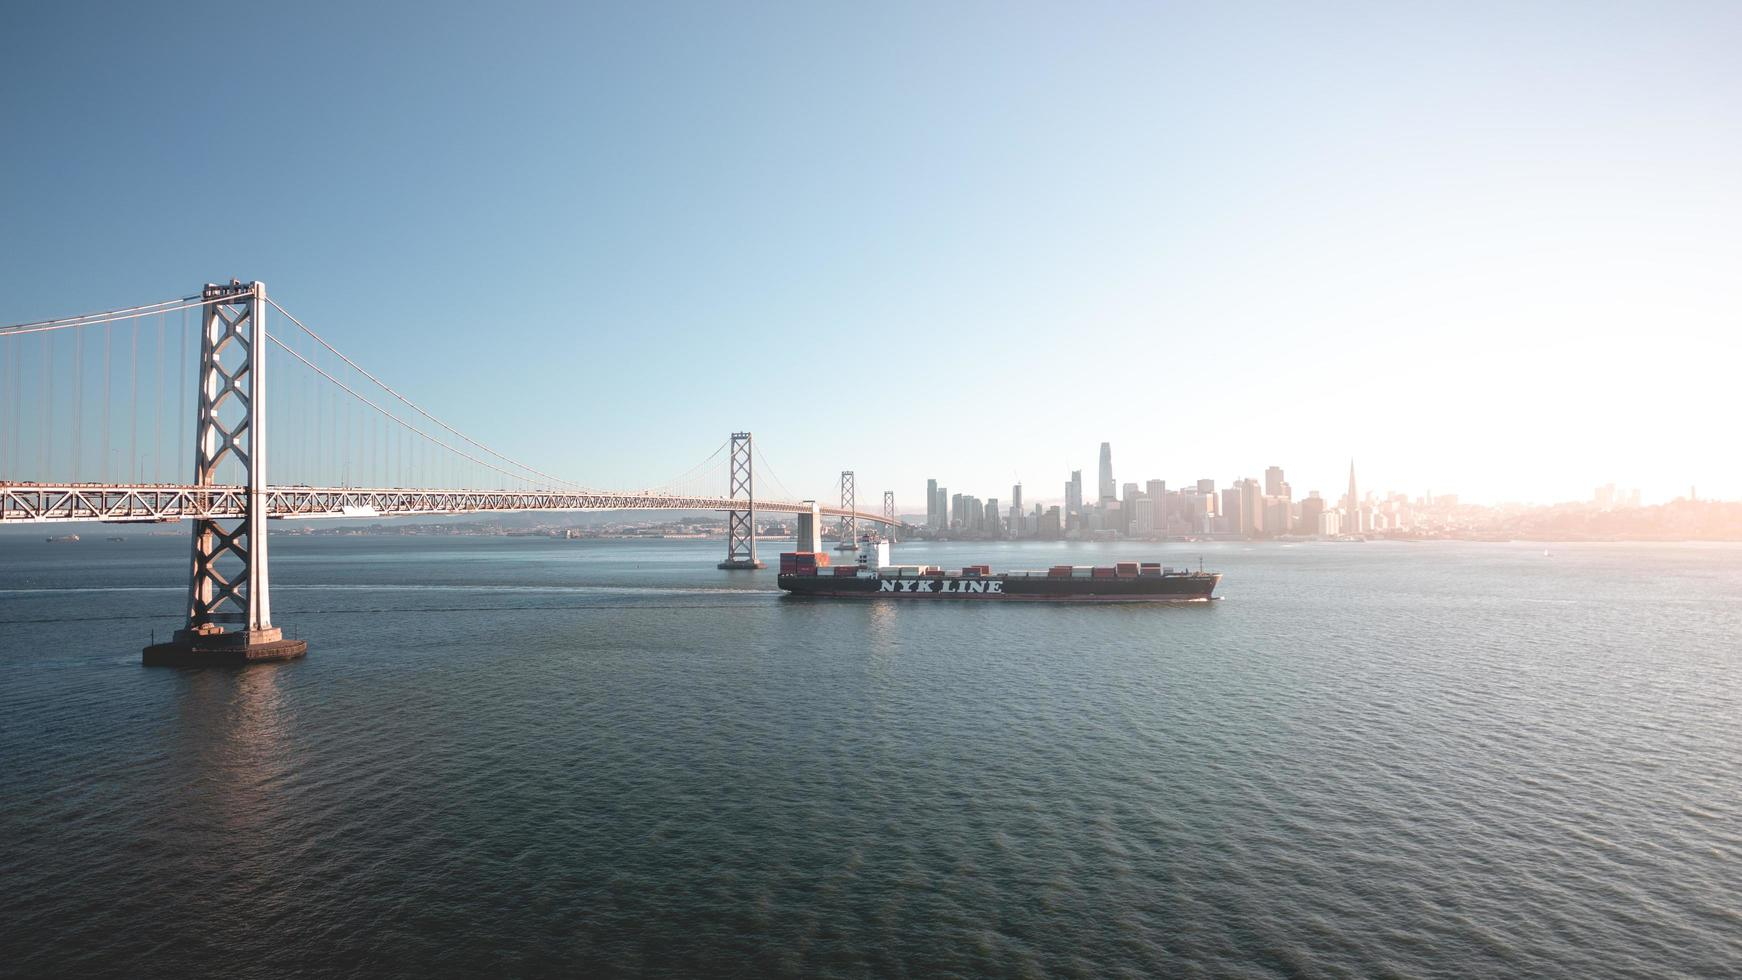 San Fransisco, CA 2018-Nyk container ship charters bay waters photo